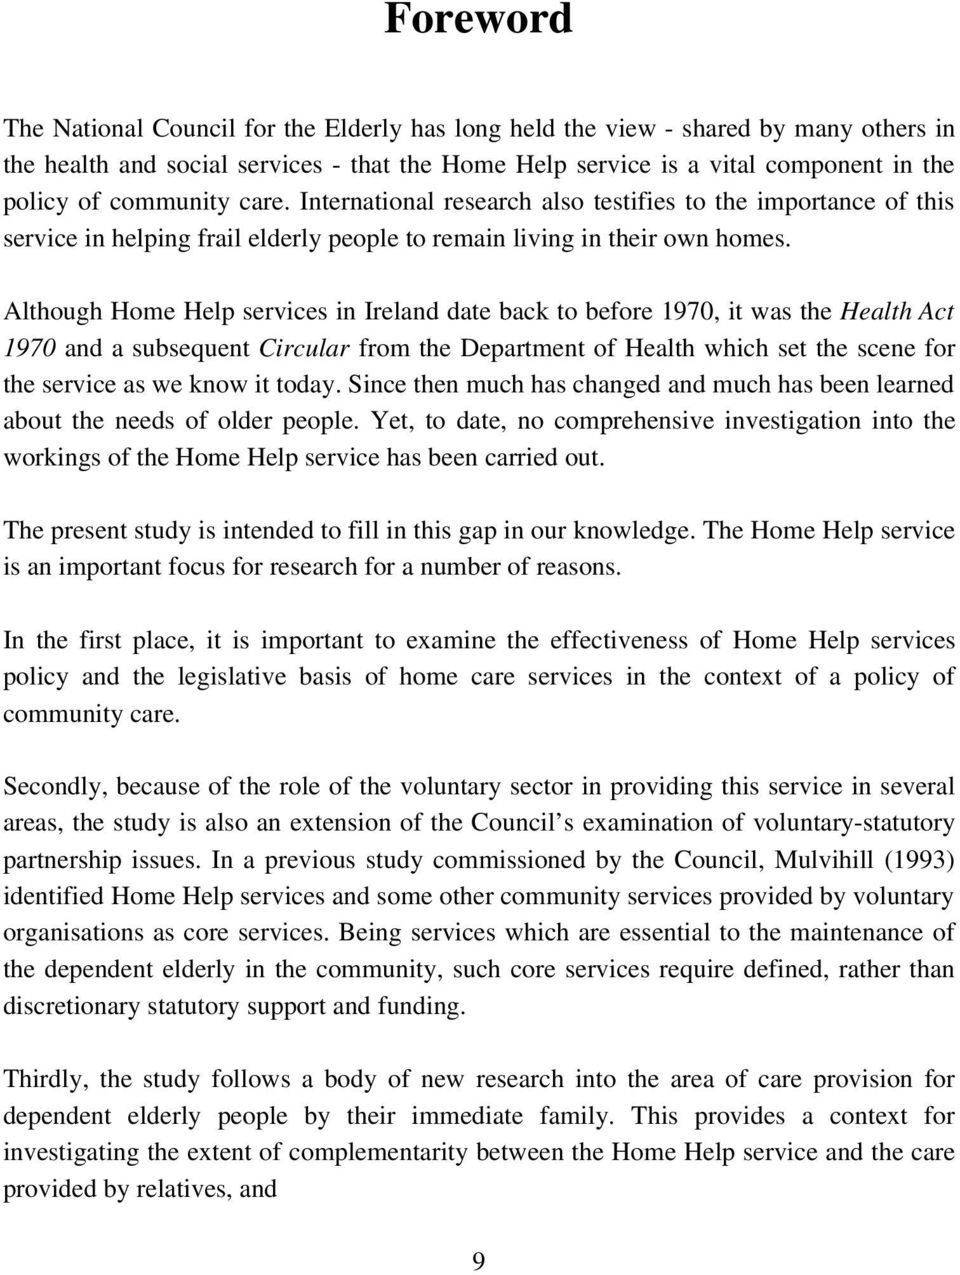 Although Home Help services in Ireland date back to before 1970, it was the Health Act 1970 and a subsequent Circular from the Department of Health which set the scene for the service as we know it